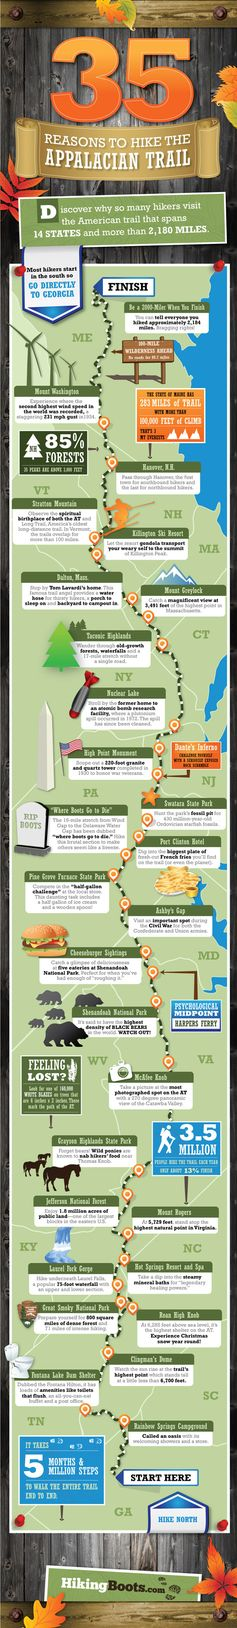 Reasons to #hike the #Appalachian #Trail infographic.